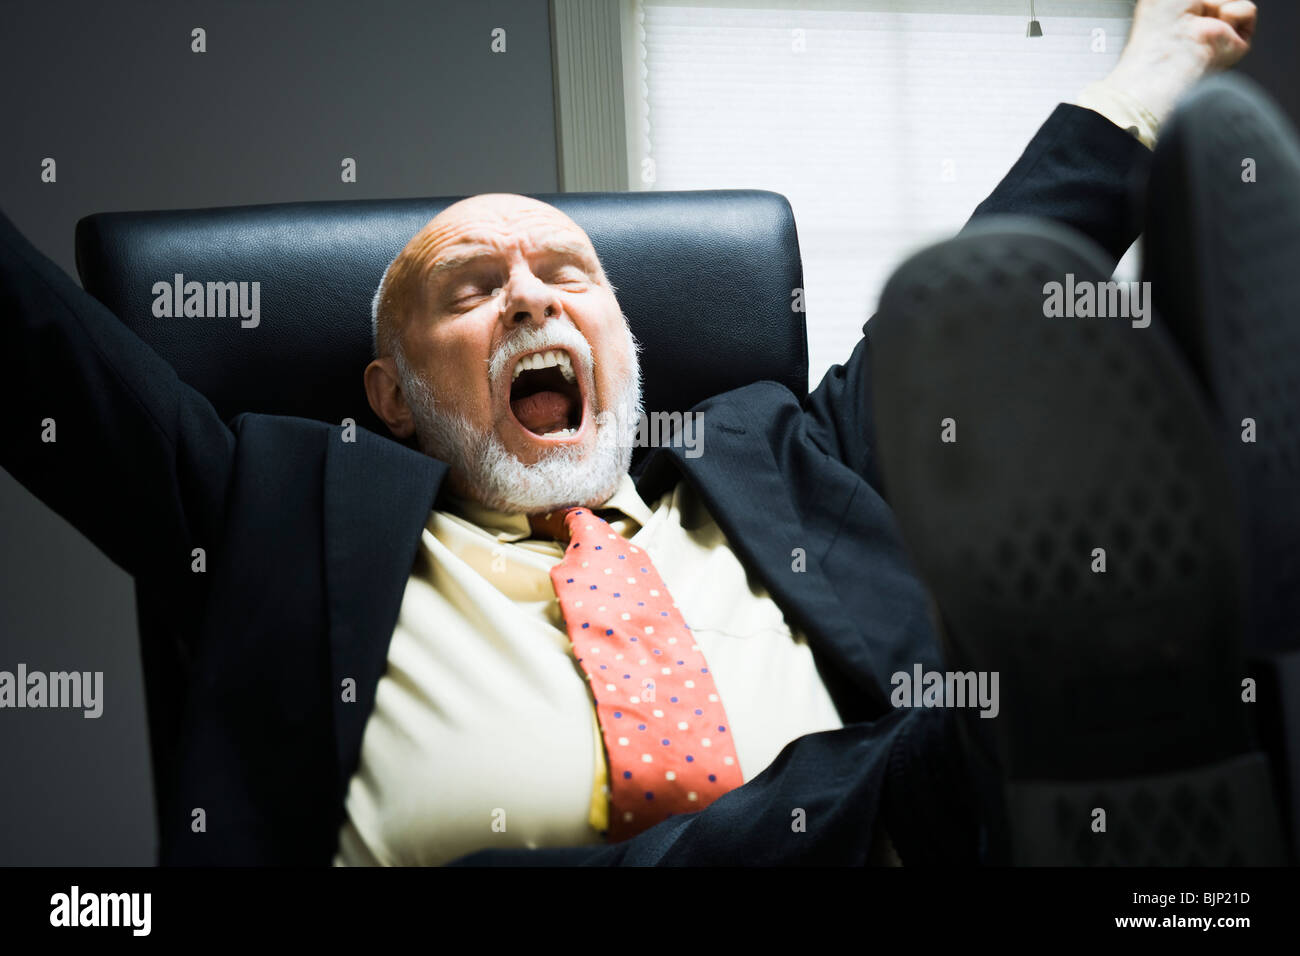 Closeup of businessman yawning in office - Stock Image